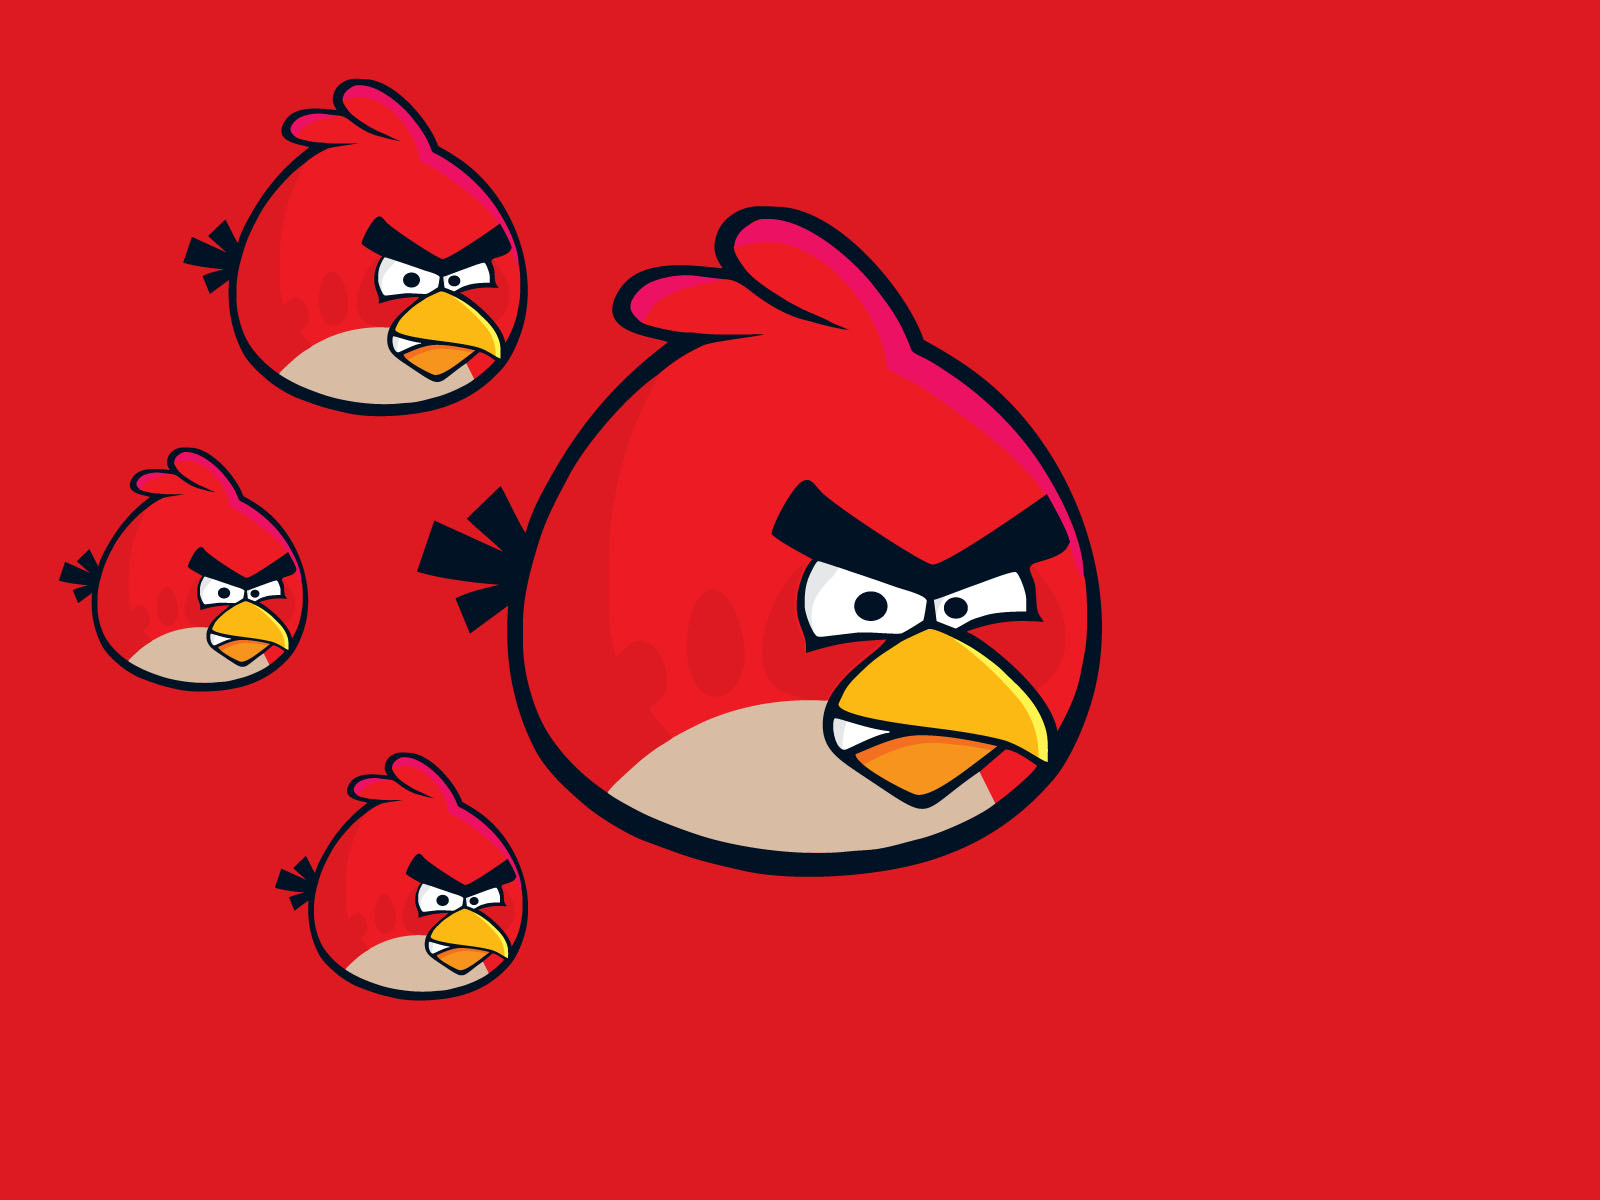 Red Angry Bird Wallpaper 30403 1600x1200 px HDWallSourcecom